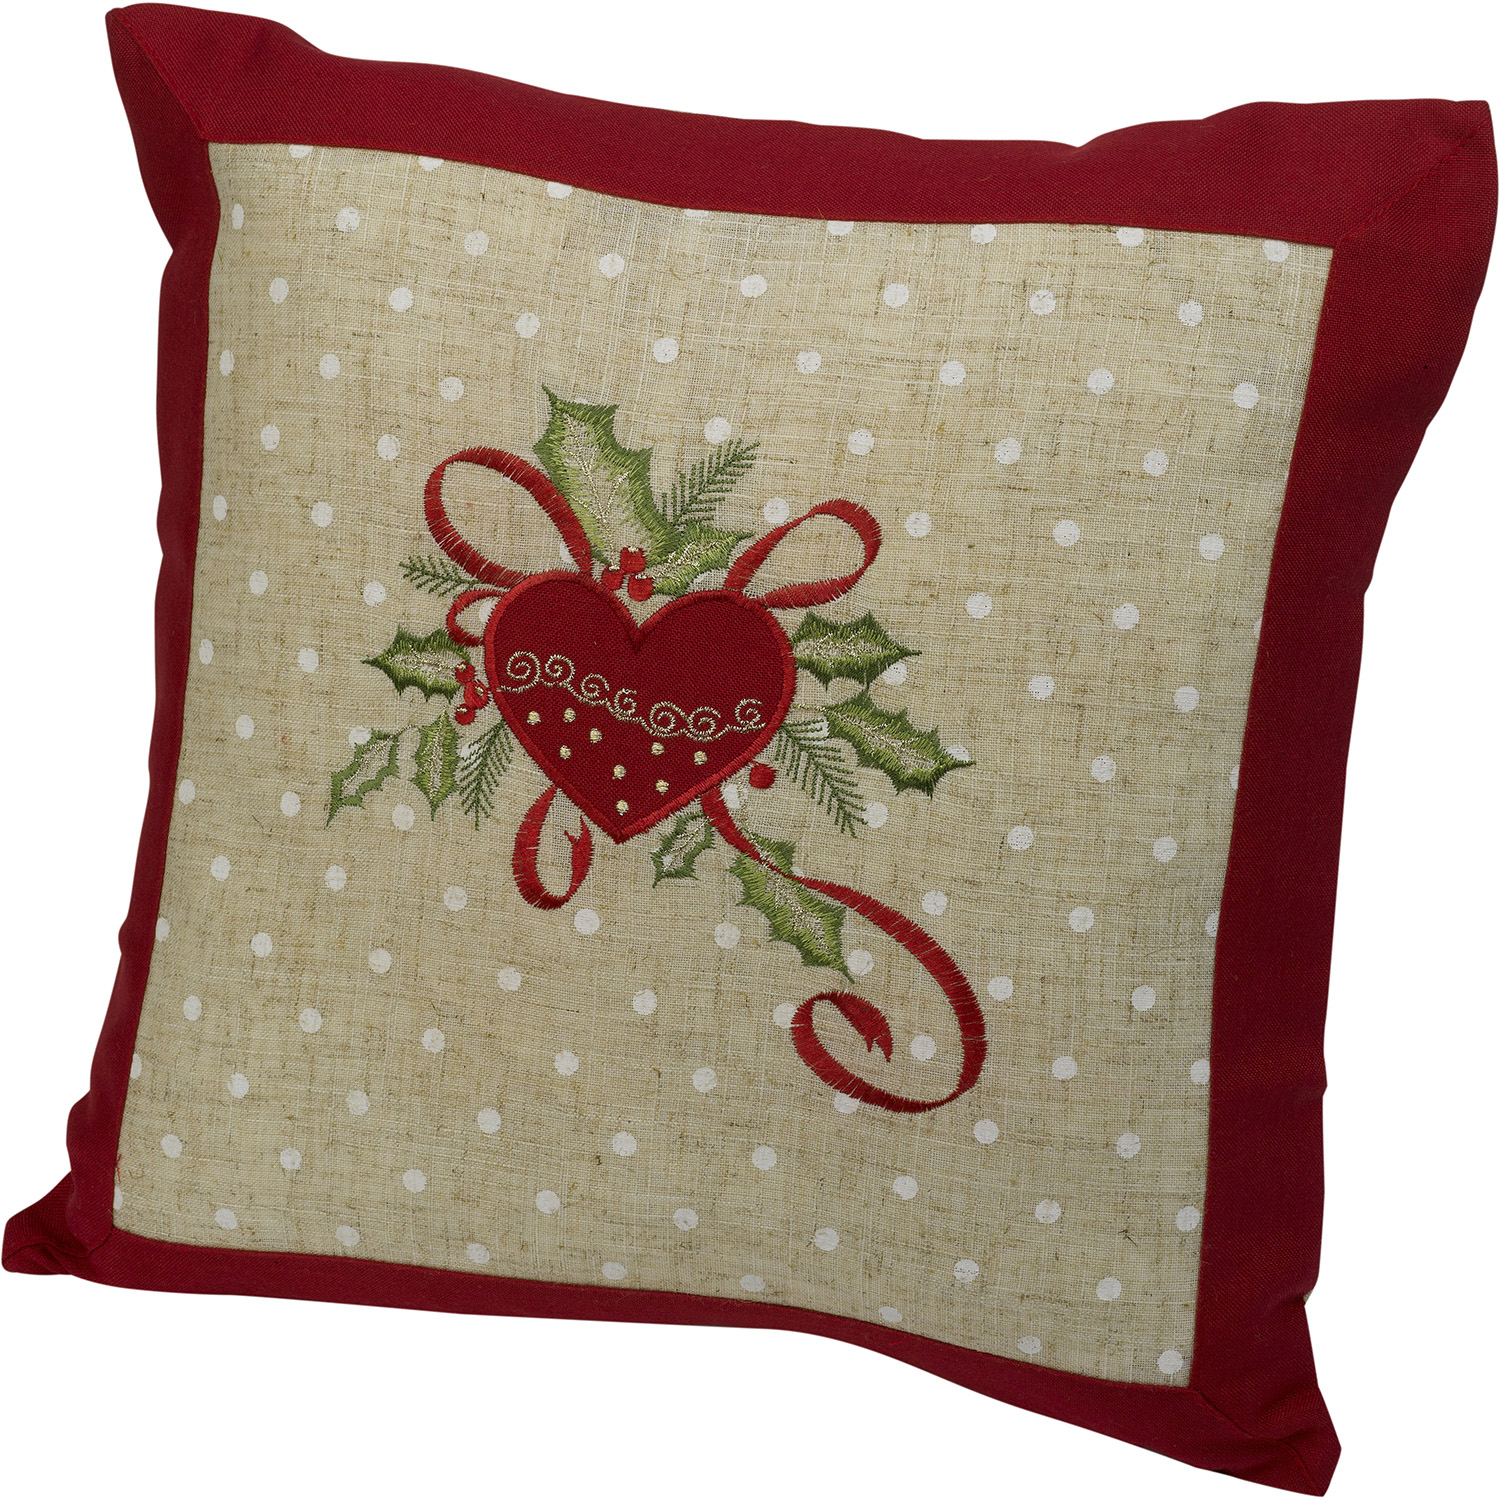 Popular christmas cushion covers of Good Quality and at Affordable Prices You can Buy on AliExpress. We believe in helping you find the product that is right for you.